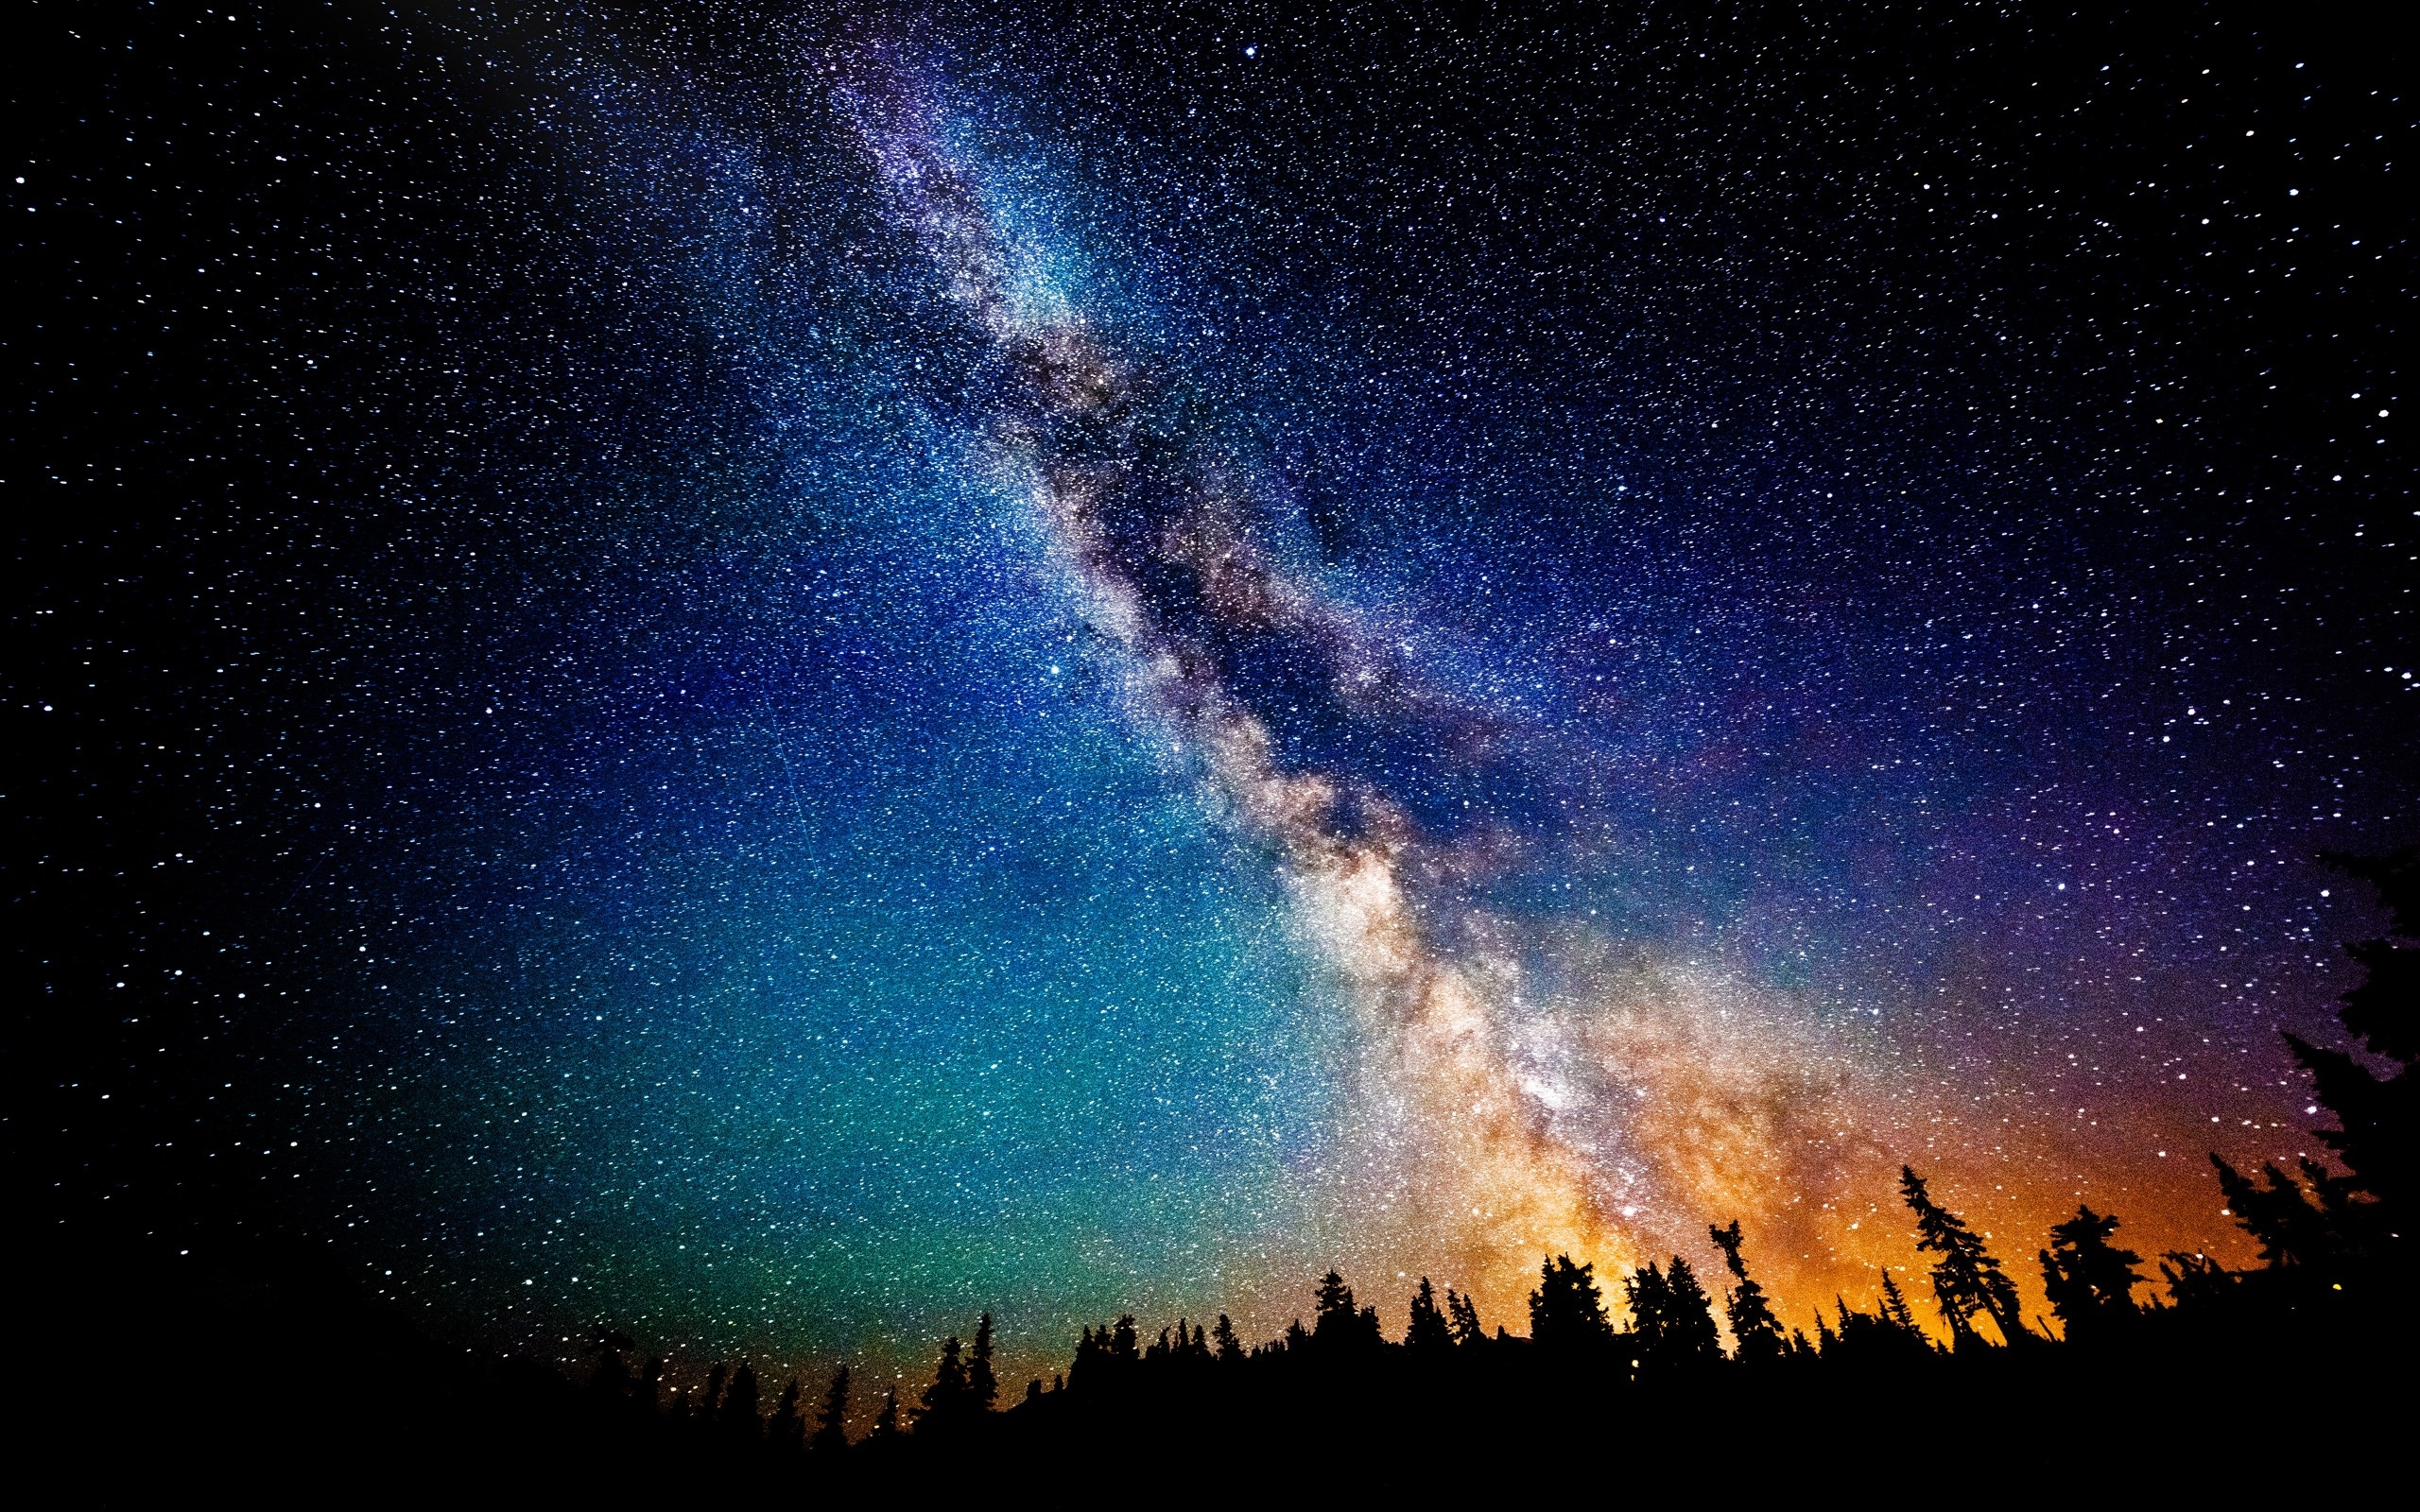 galaxy hd wallpaper | 2560x1600 | #44014